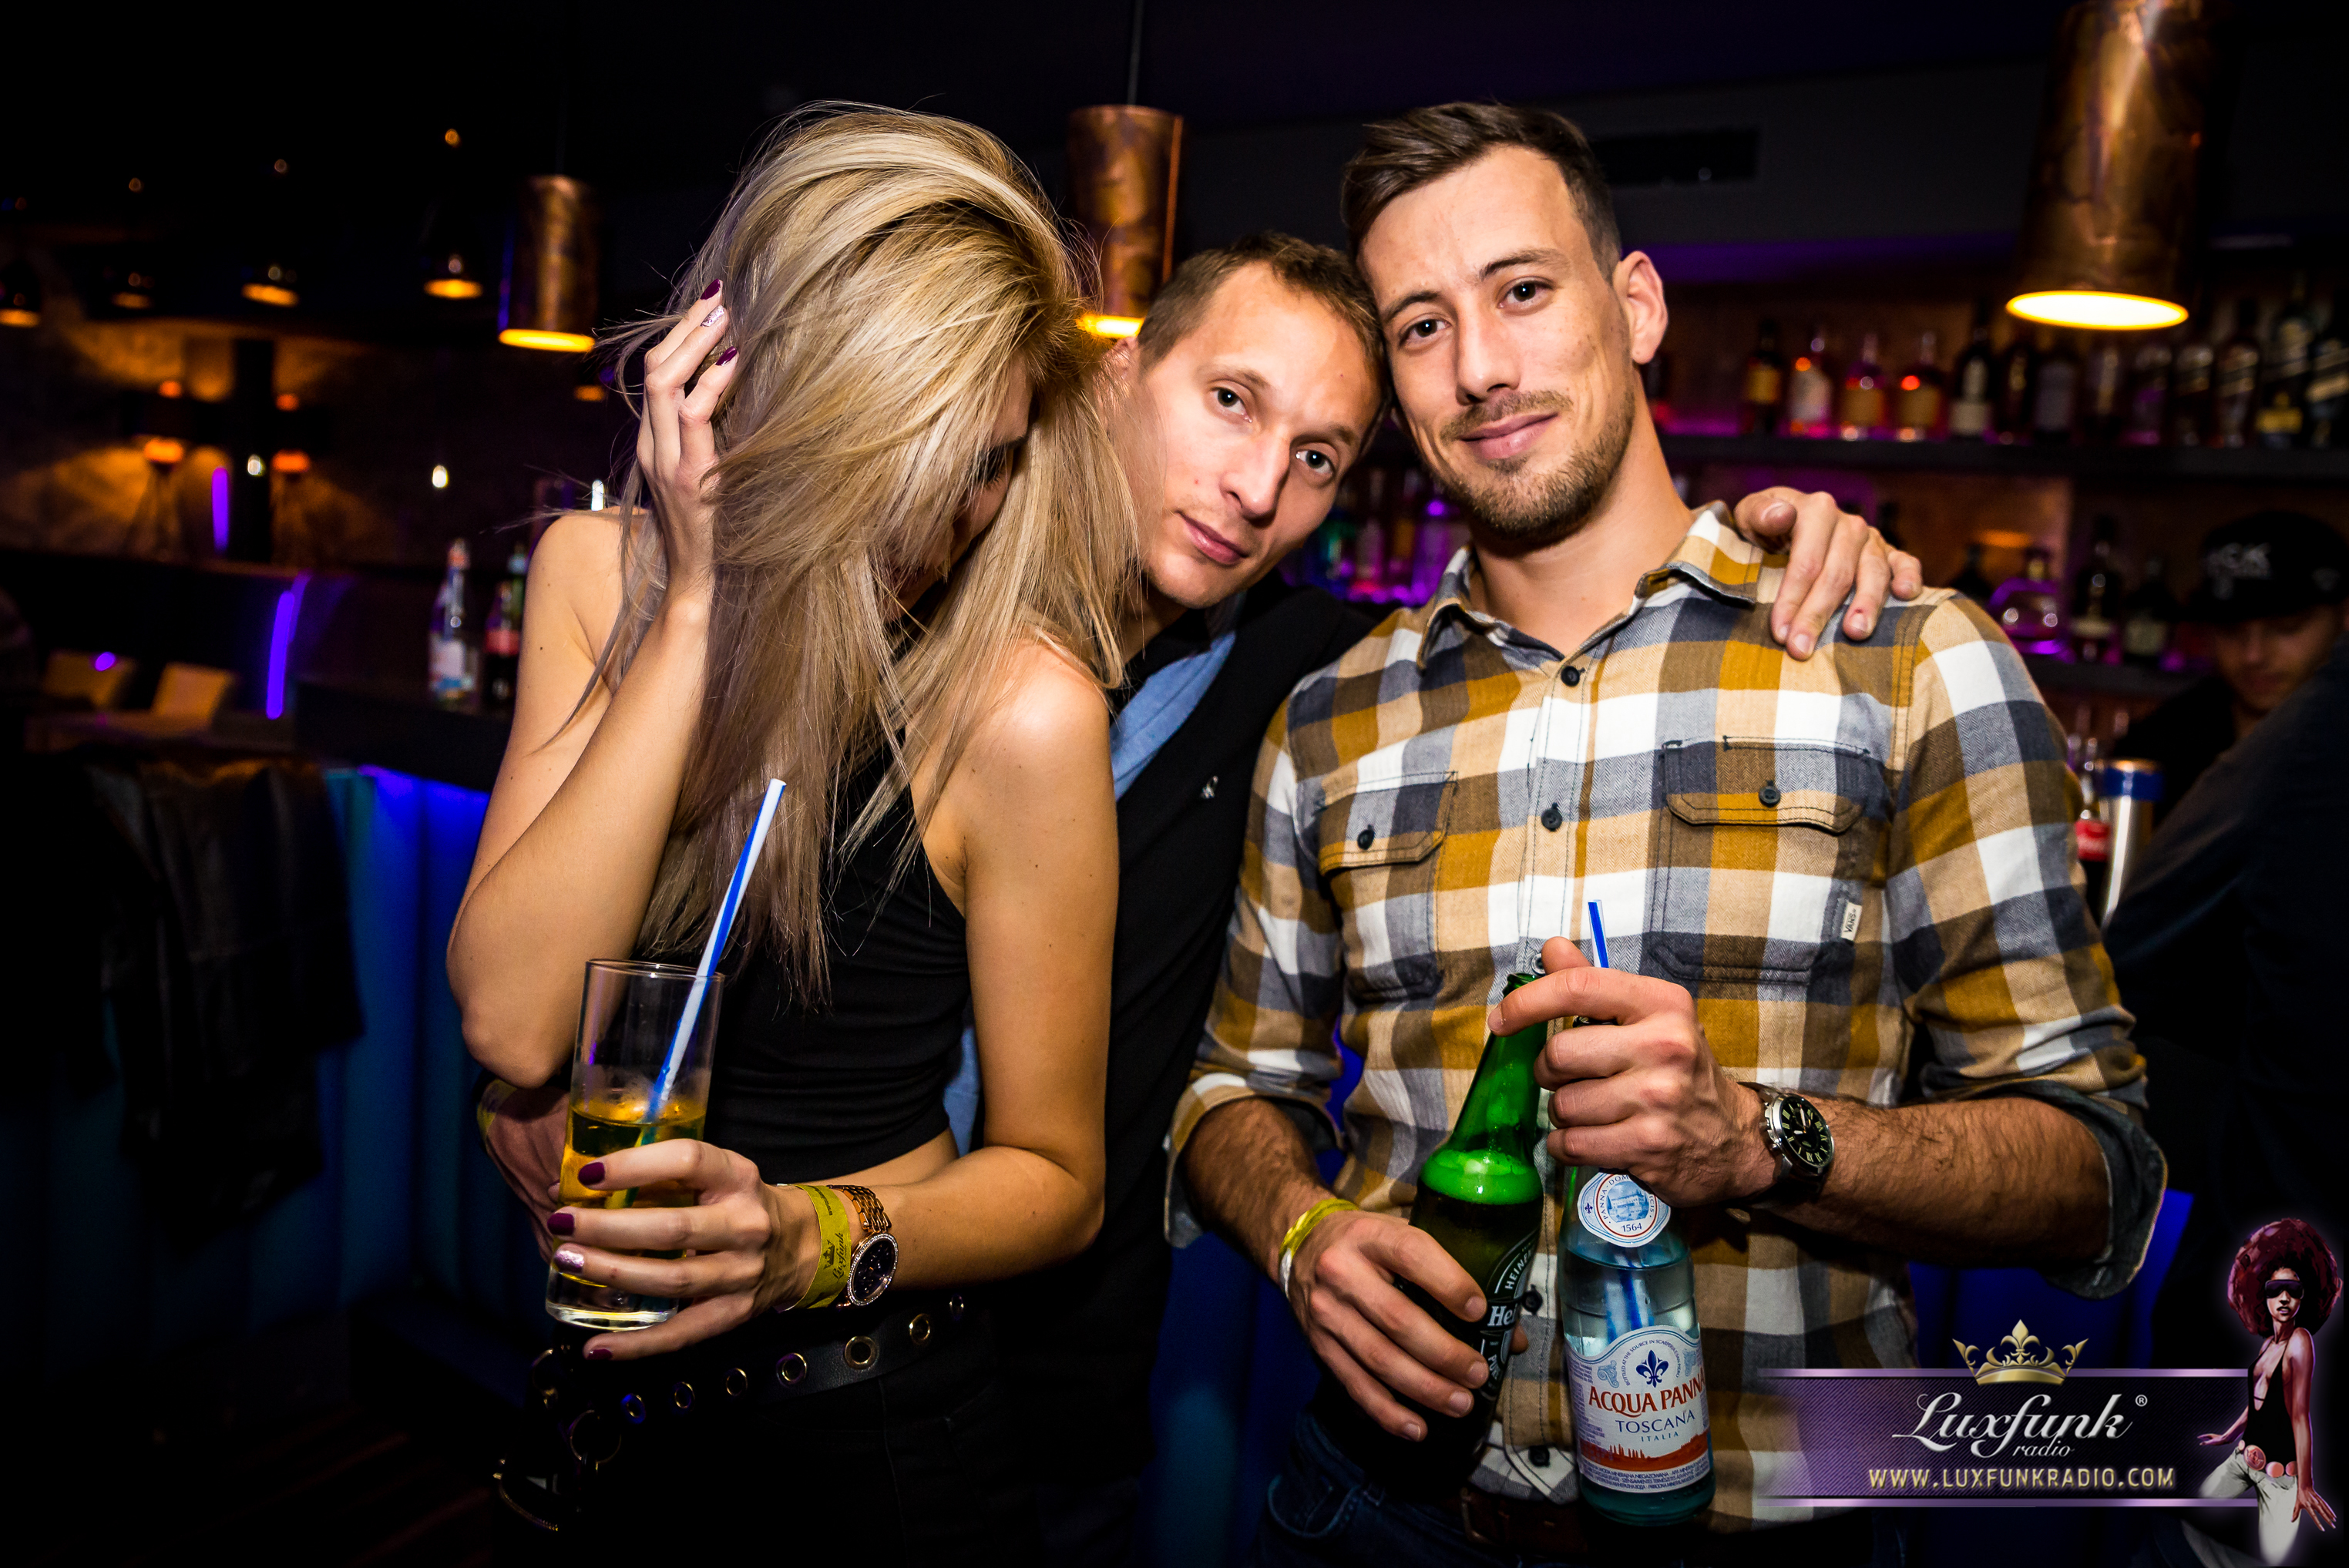 luxfunk-radio-funky-party-20191108-lock-budapest-1347